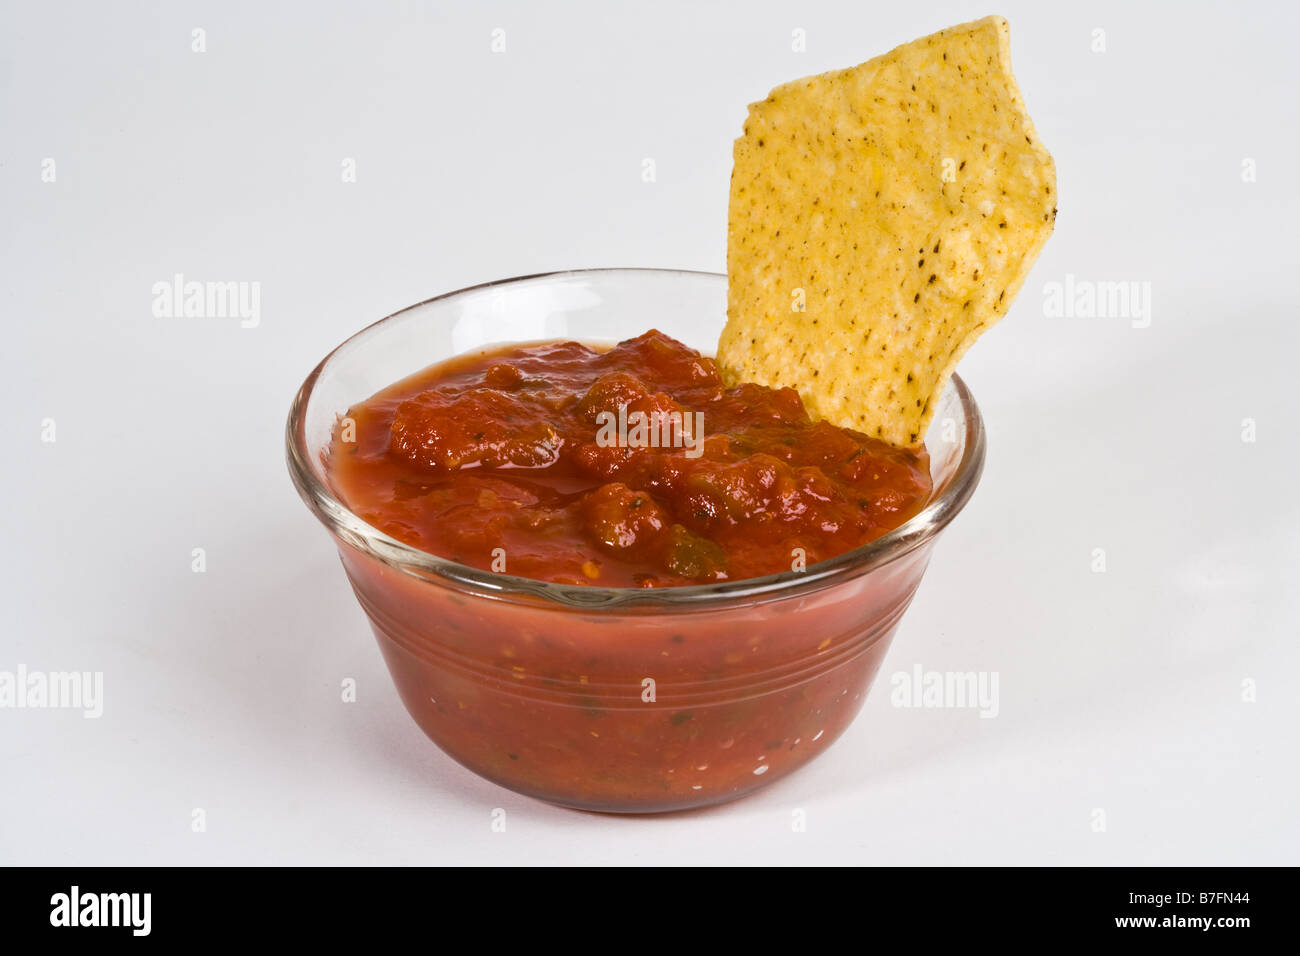 A corn chip dipped in a bowl of salsa - Stock Image